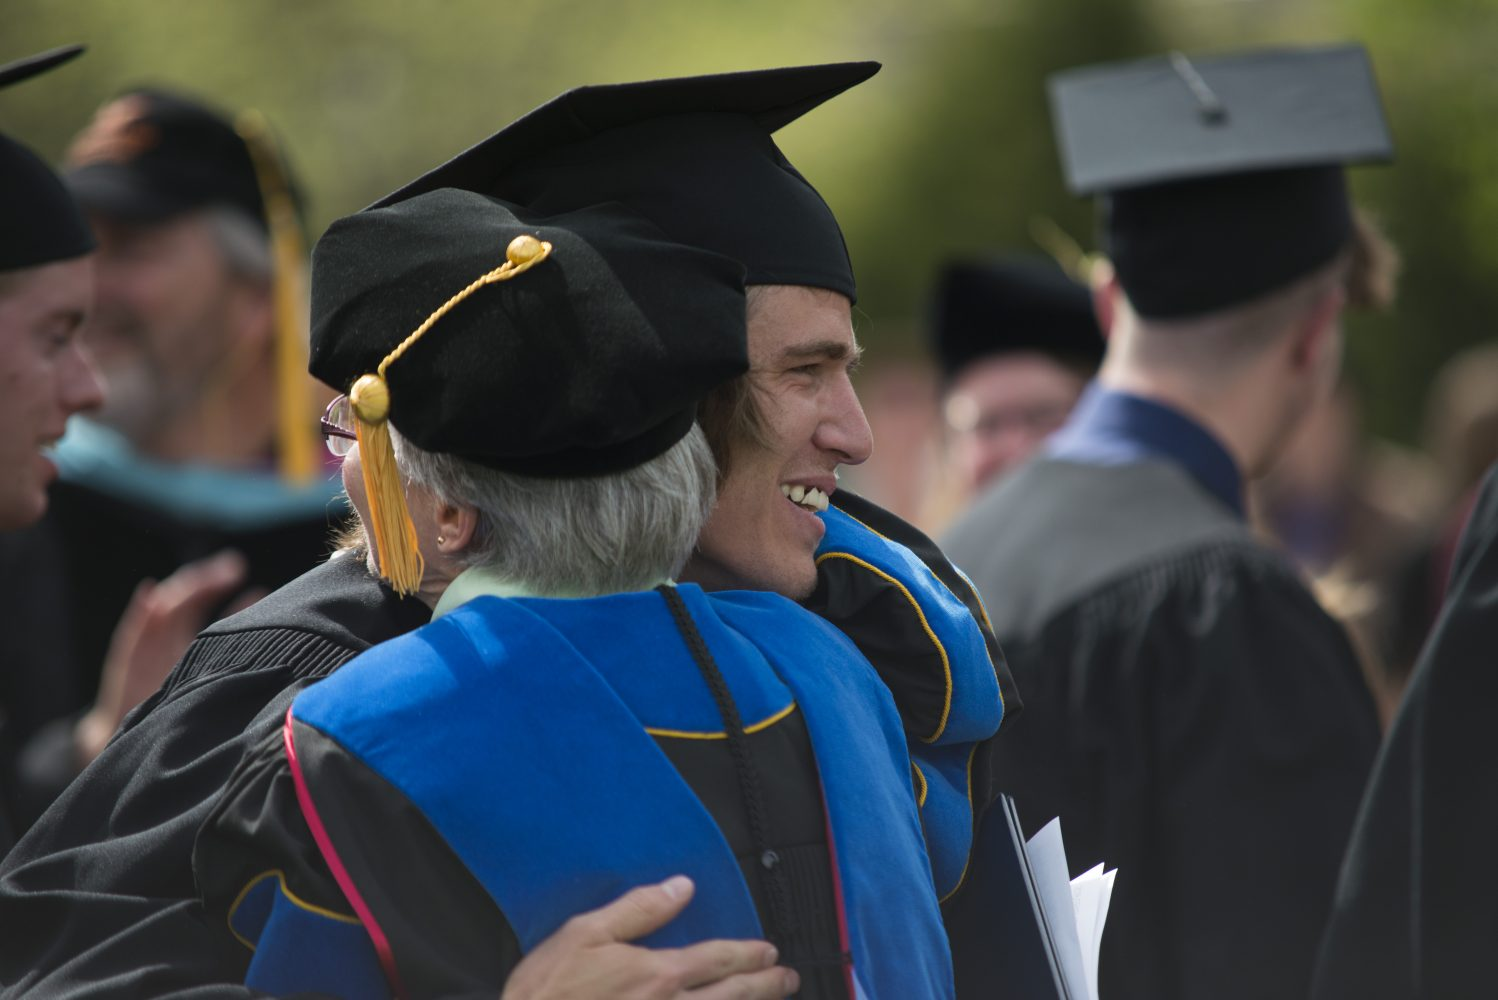 Hug at commencement